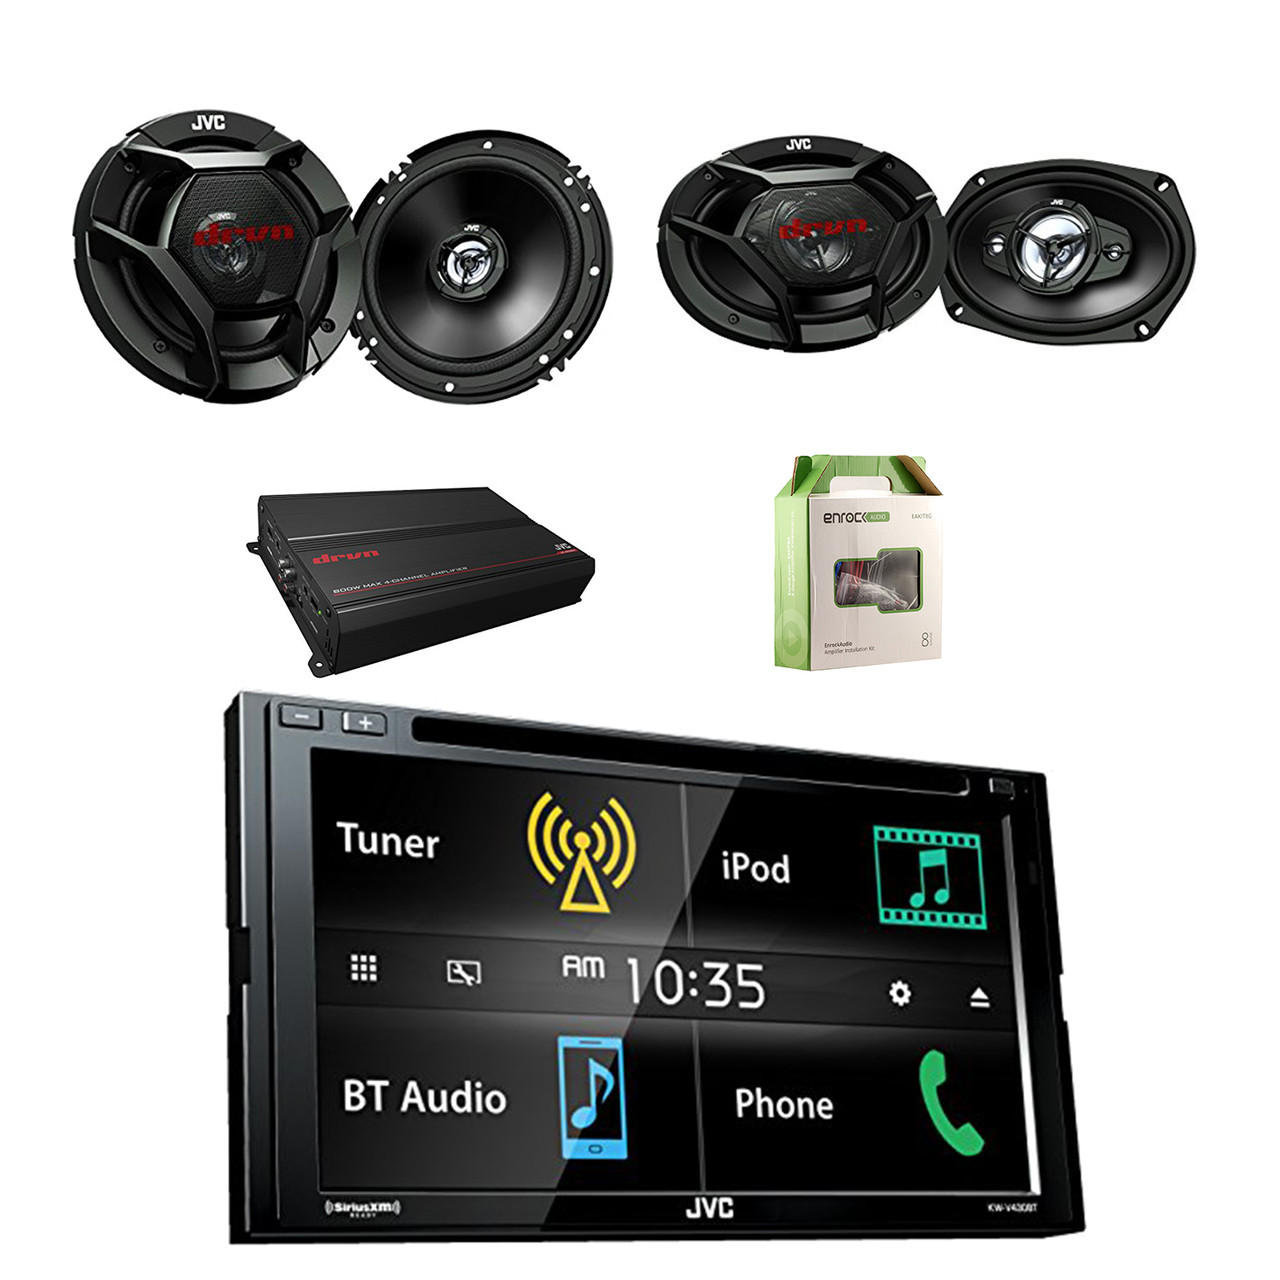 small resolution of jvc double din bluetooth lcd touchscreen mp3 car stereo receiver w jvc 2 way factory upgrade coaxial speakers pair jvc 4 way speakers pair jvc 4 chan dr